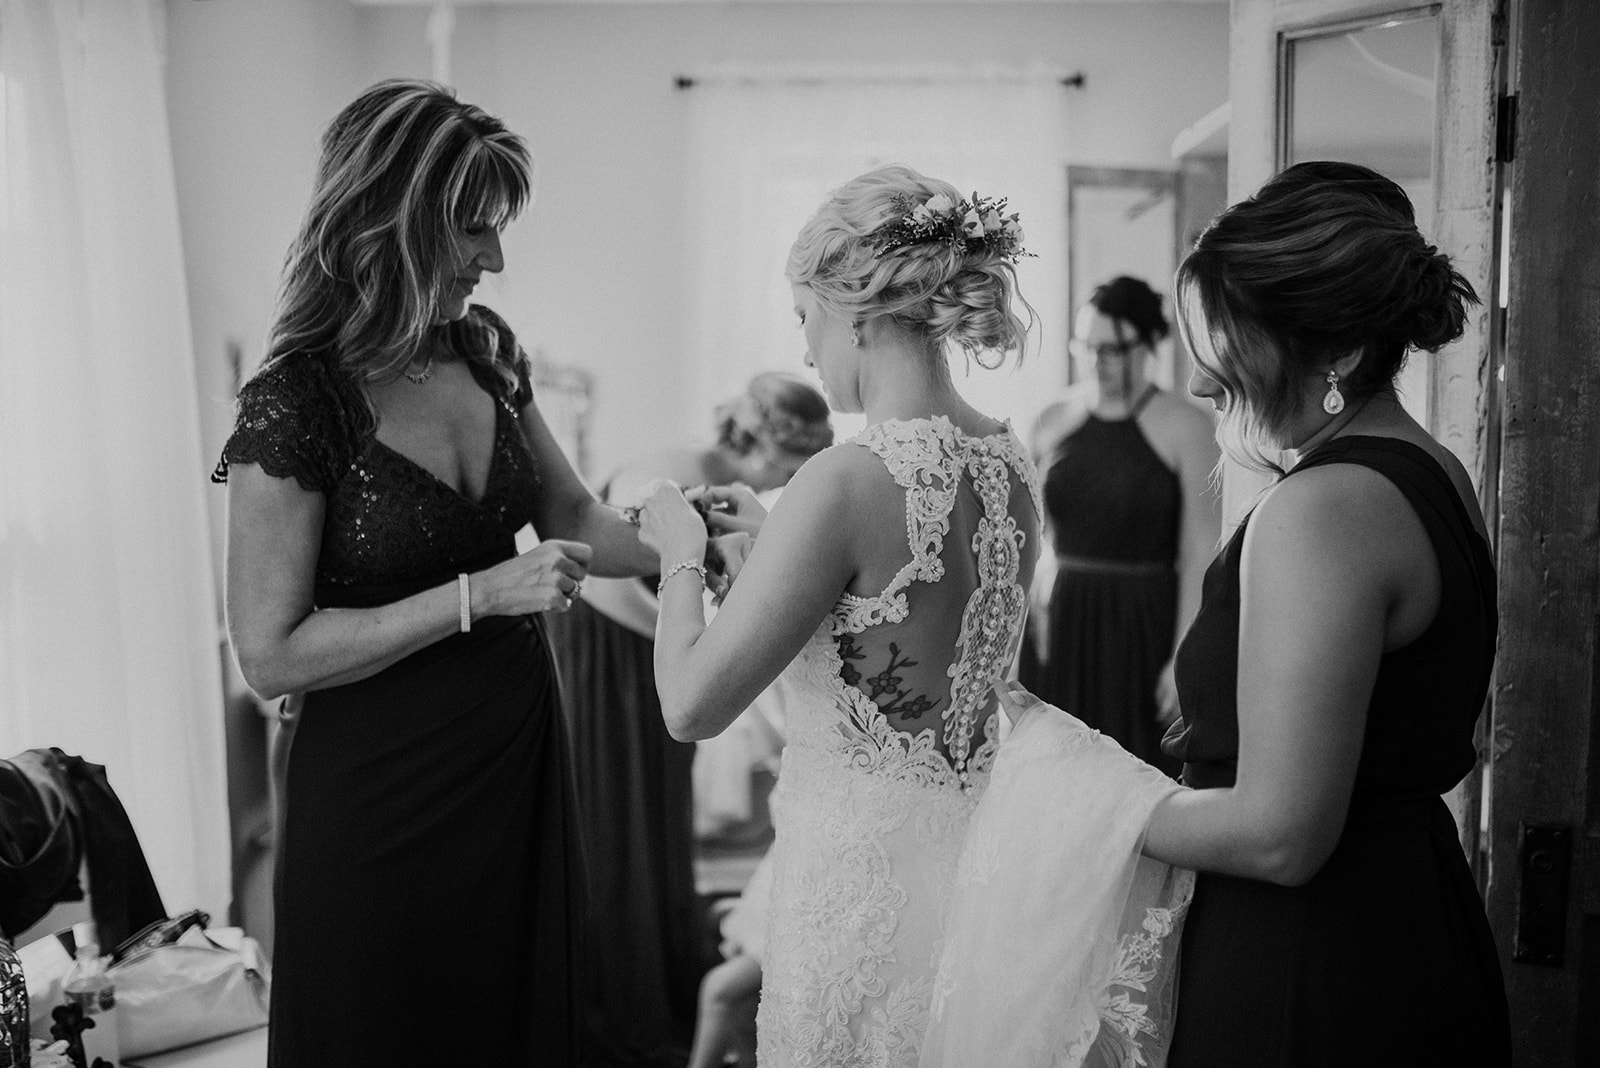 overthevineswisconsinwedding_0431.jpg